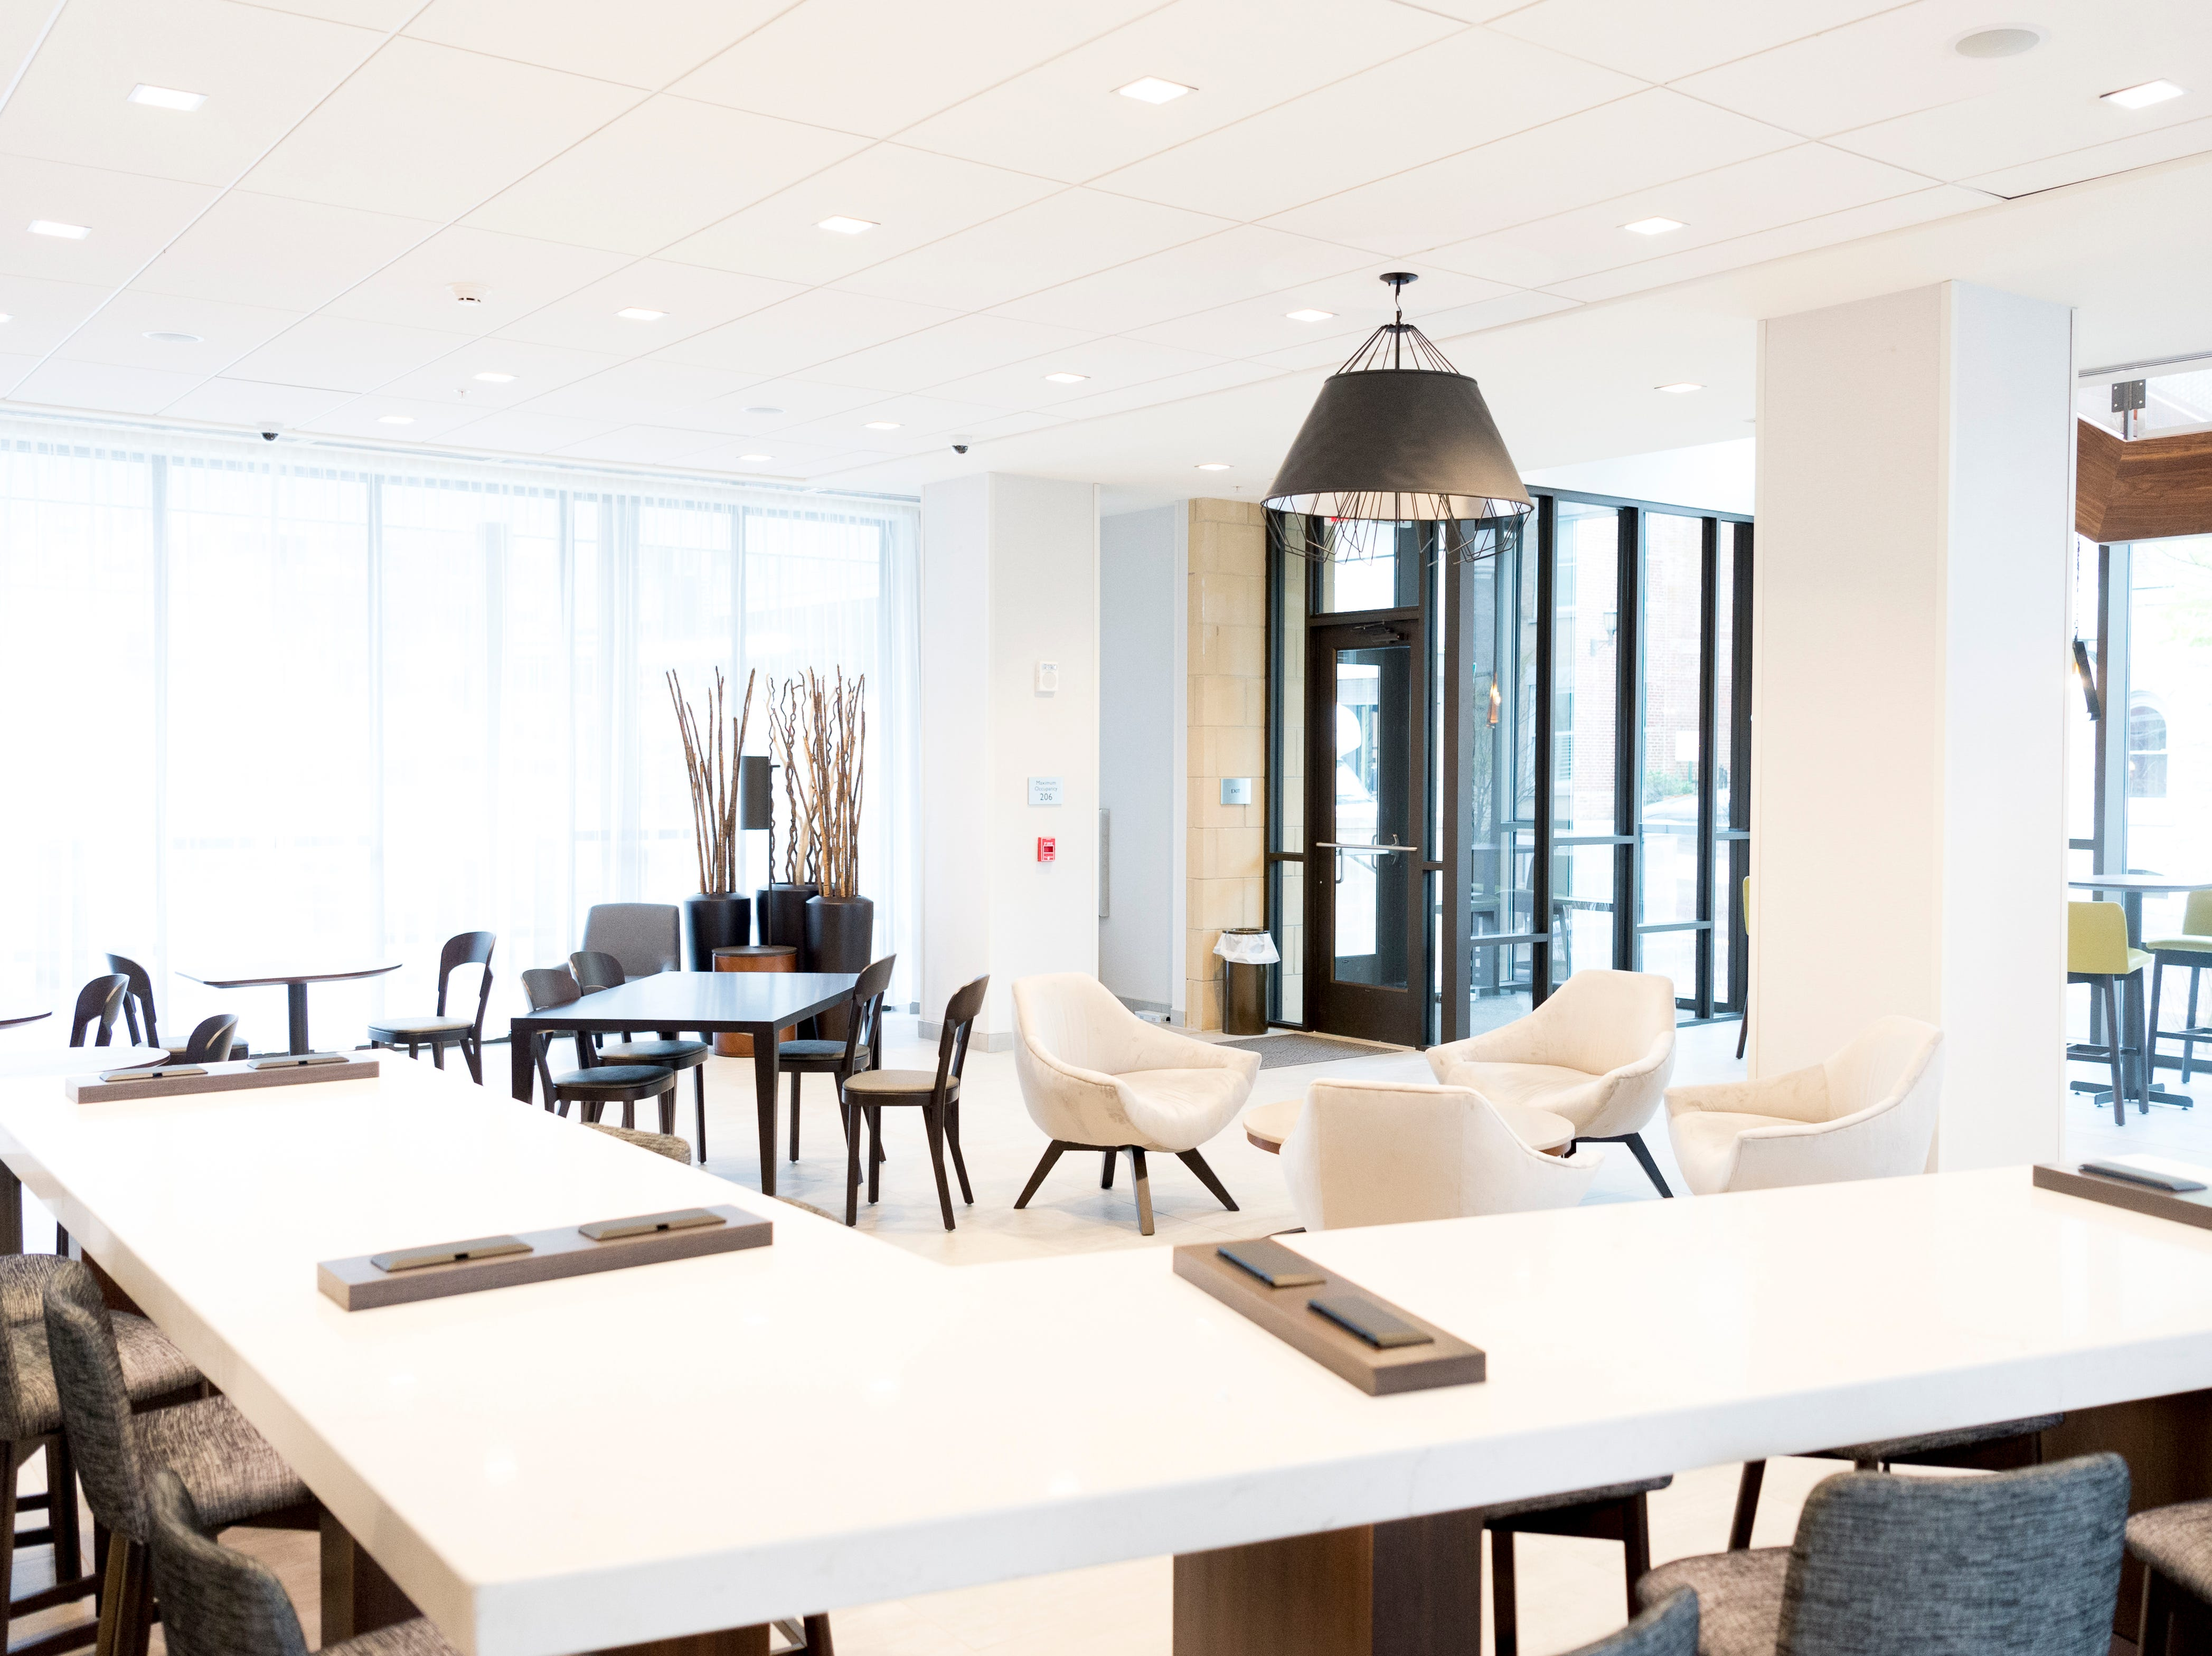 The lounge inside the new Courtyard and Residence Inn by Marriott at 210 Church Ave. in Knoxville, Tennessee on Monday, March 25, 2019. The hotel is the first of its kind in Knoxville to offer two different tiers of hospitality within the same building.